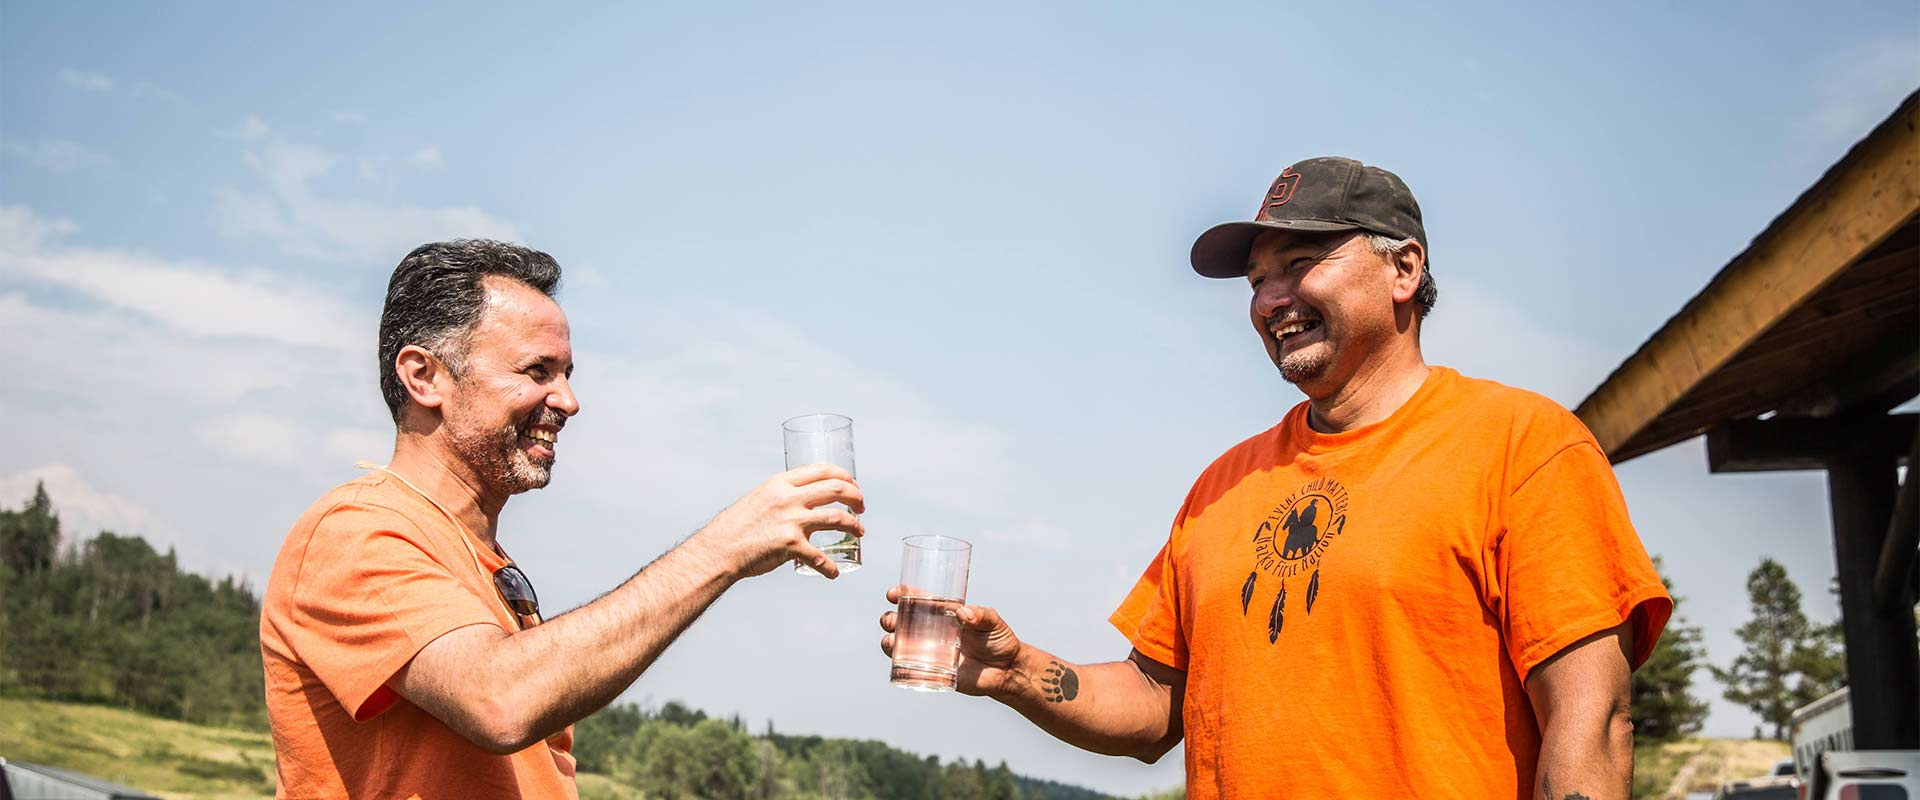 Professors in orange shirts raise their glass to toast